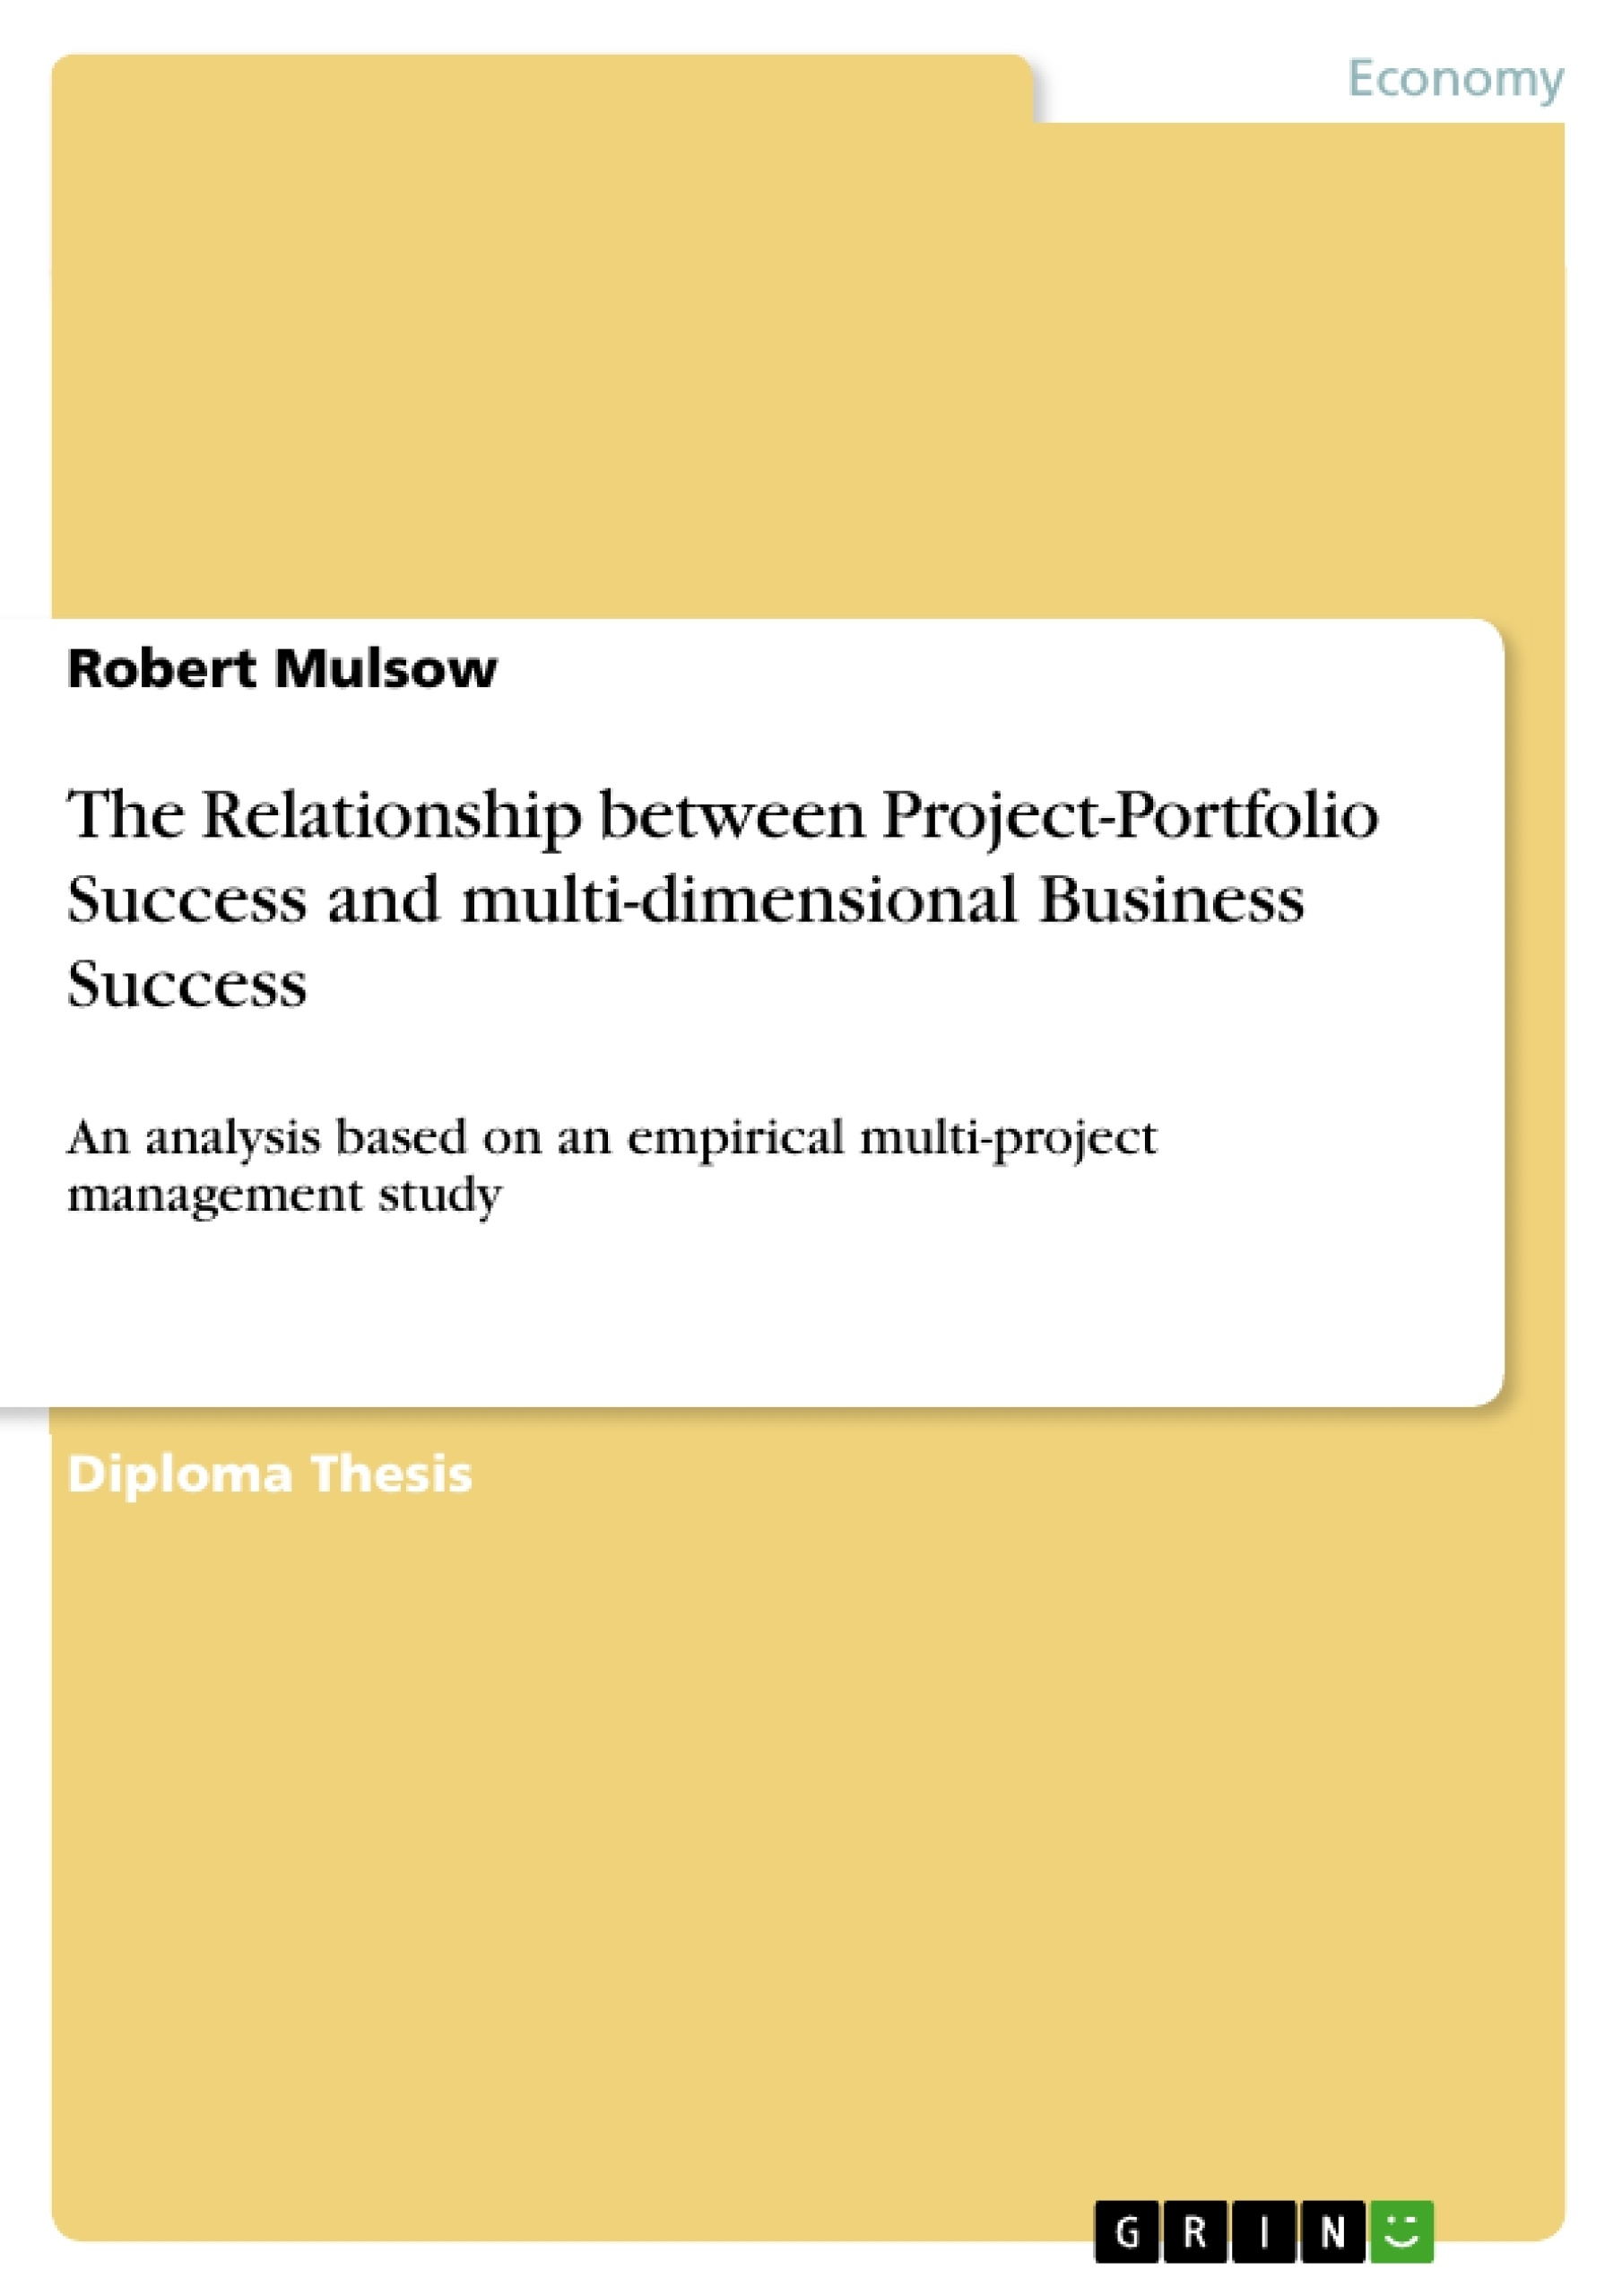 Title: The Relationship between Project-Portfolio Success and multi-dimensional Business Success